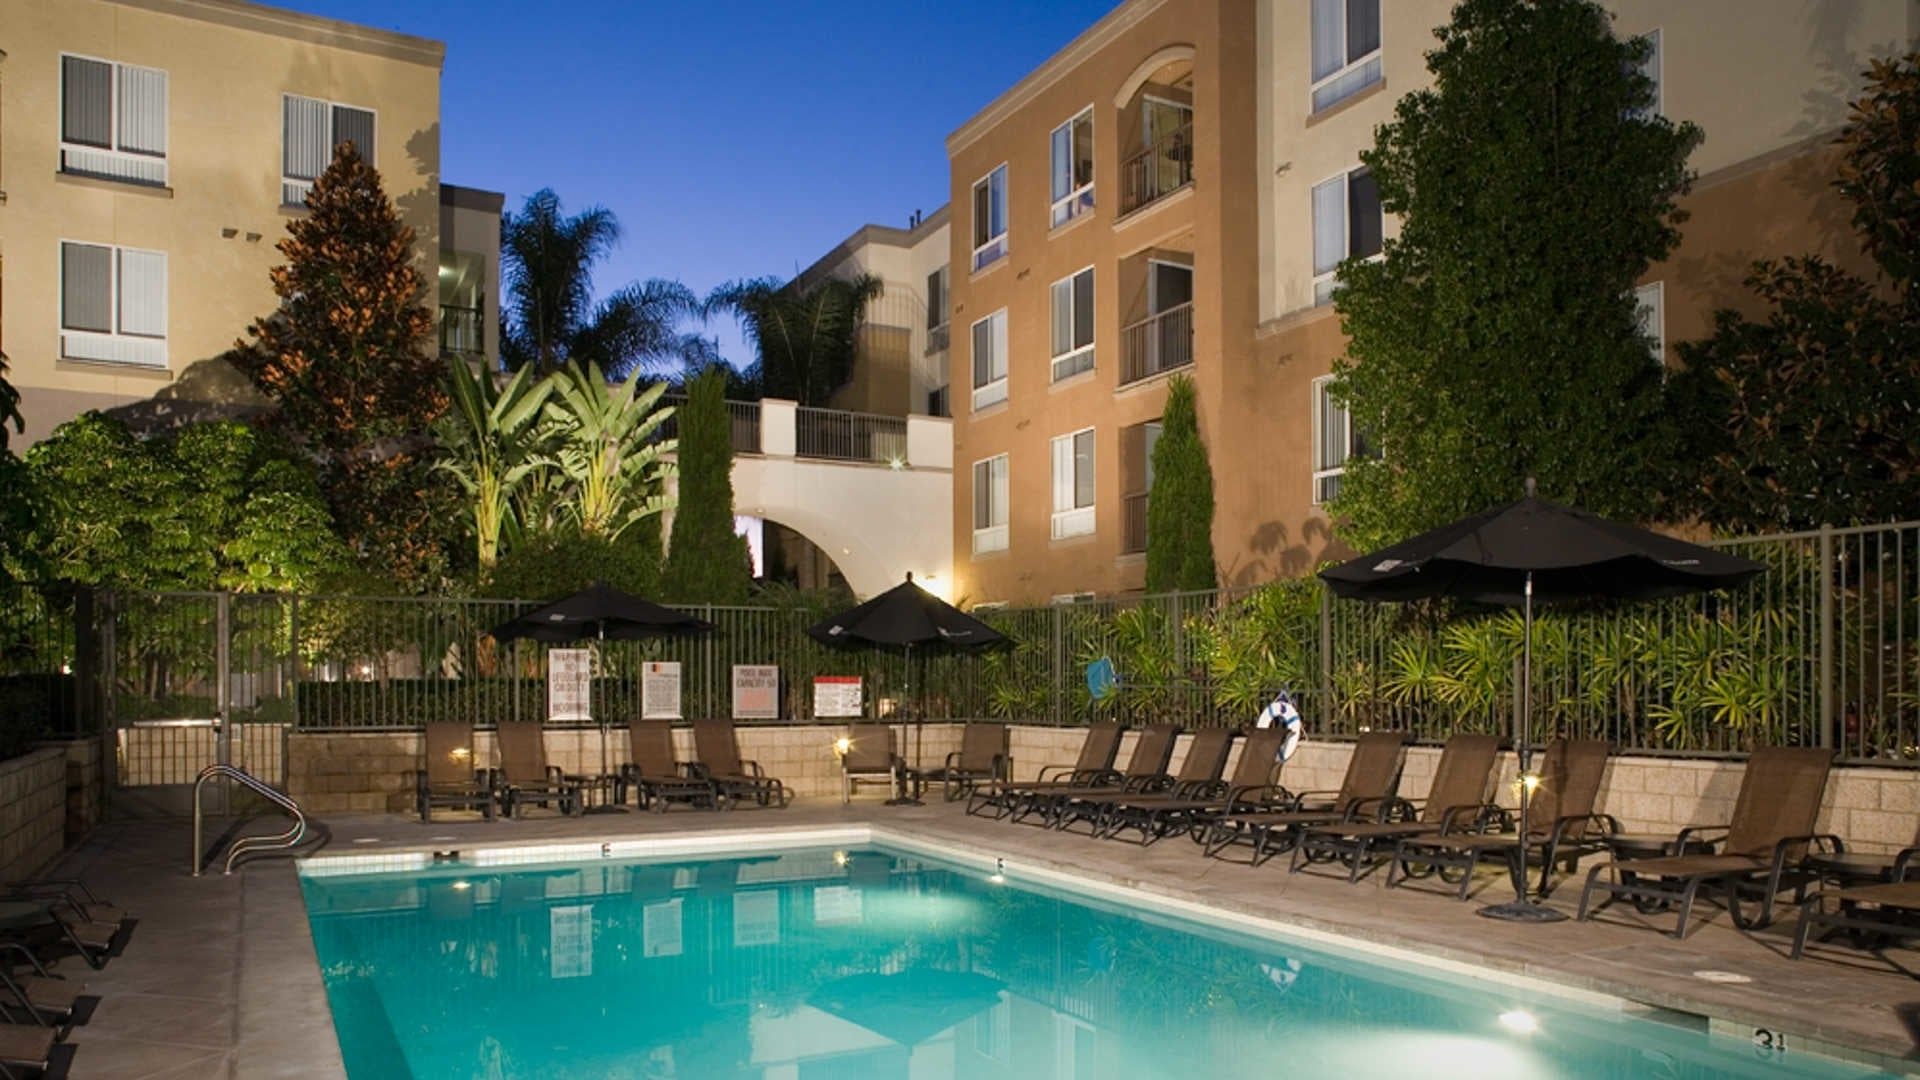 20 Best Apartments For Rent In Fullerton, Ca From $1270! with Best Layout For Apartments For Rent Garden Grove Ca Design Ideas